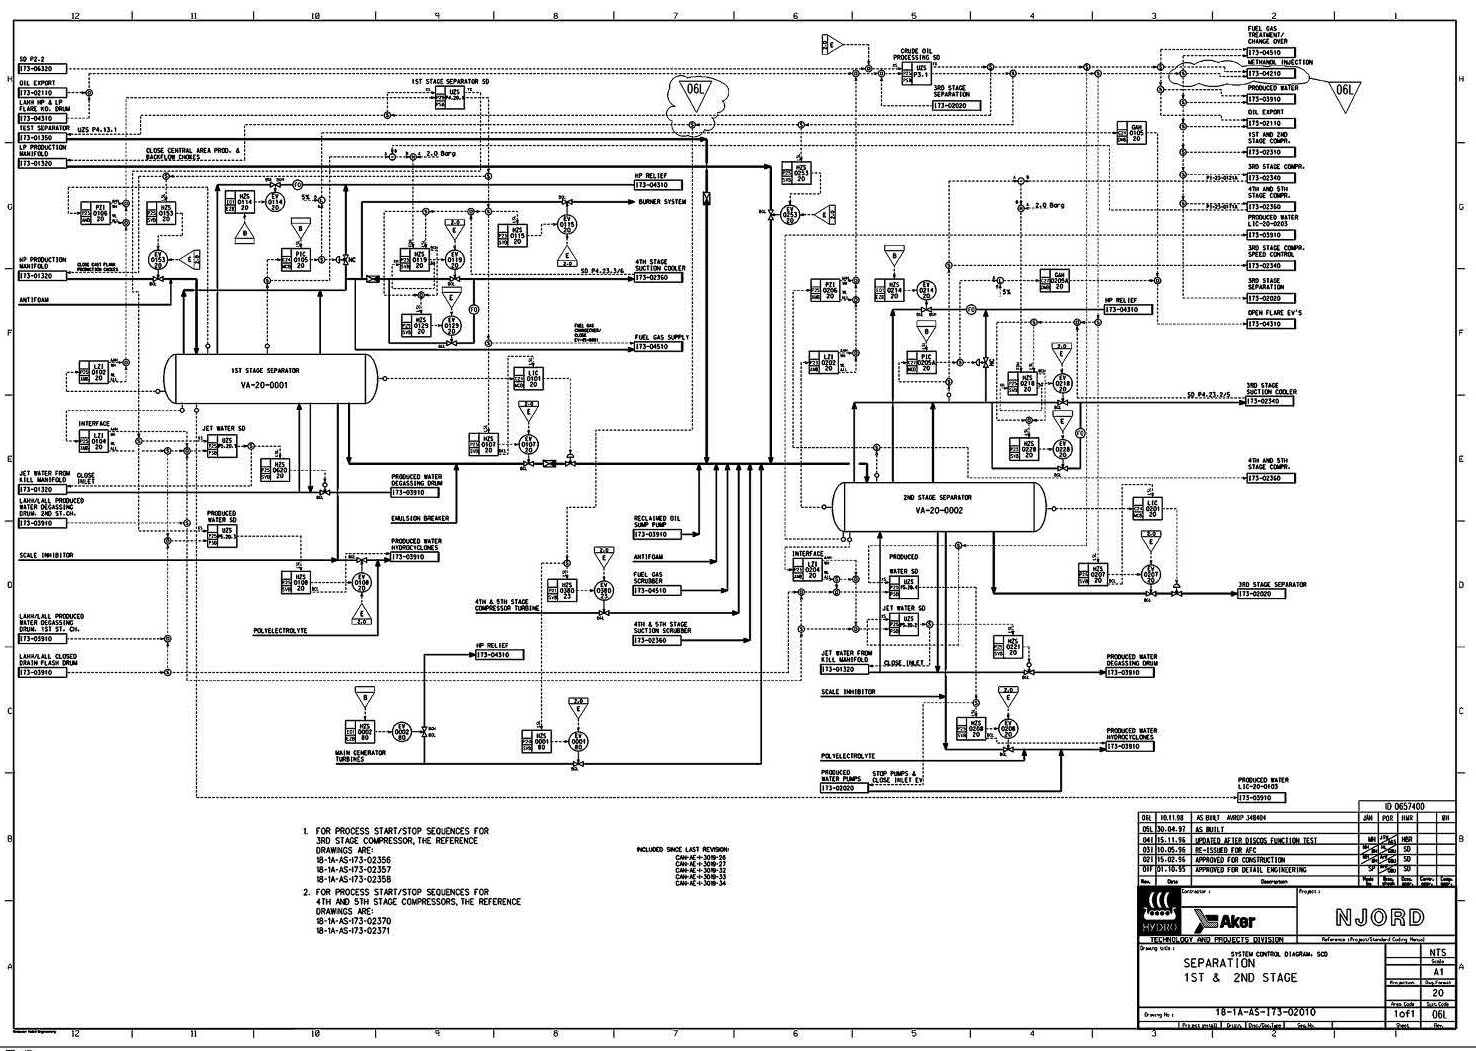 these include loop diagram instrument datasheet cable schedule and termination list  [ 1476 x 1051 Pixel ]